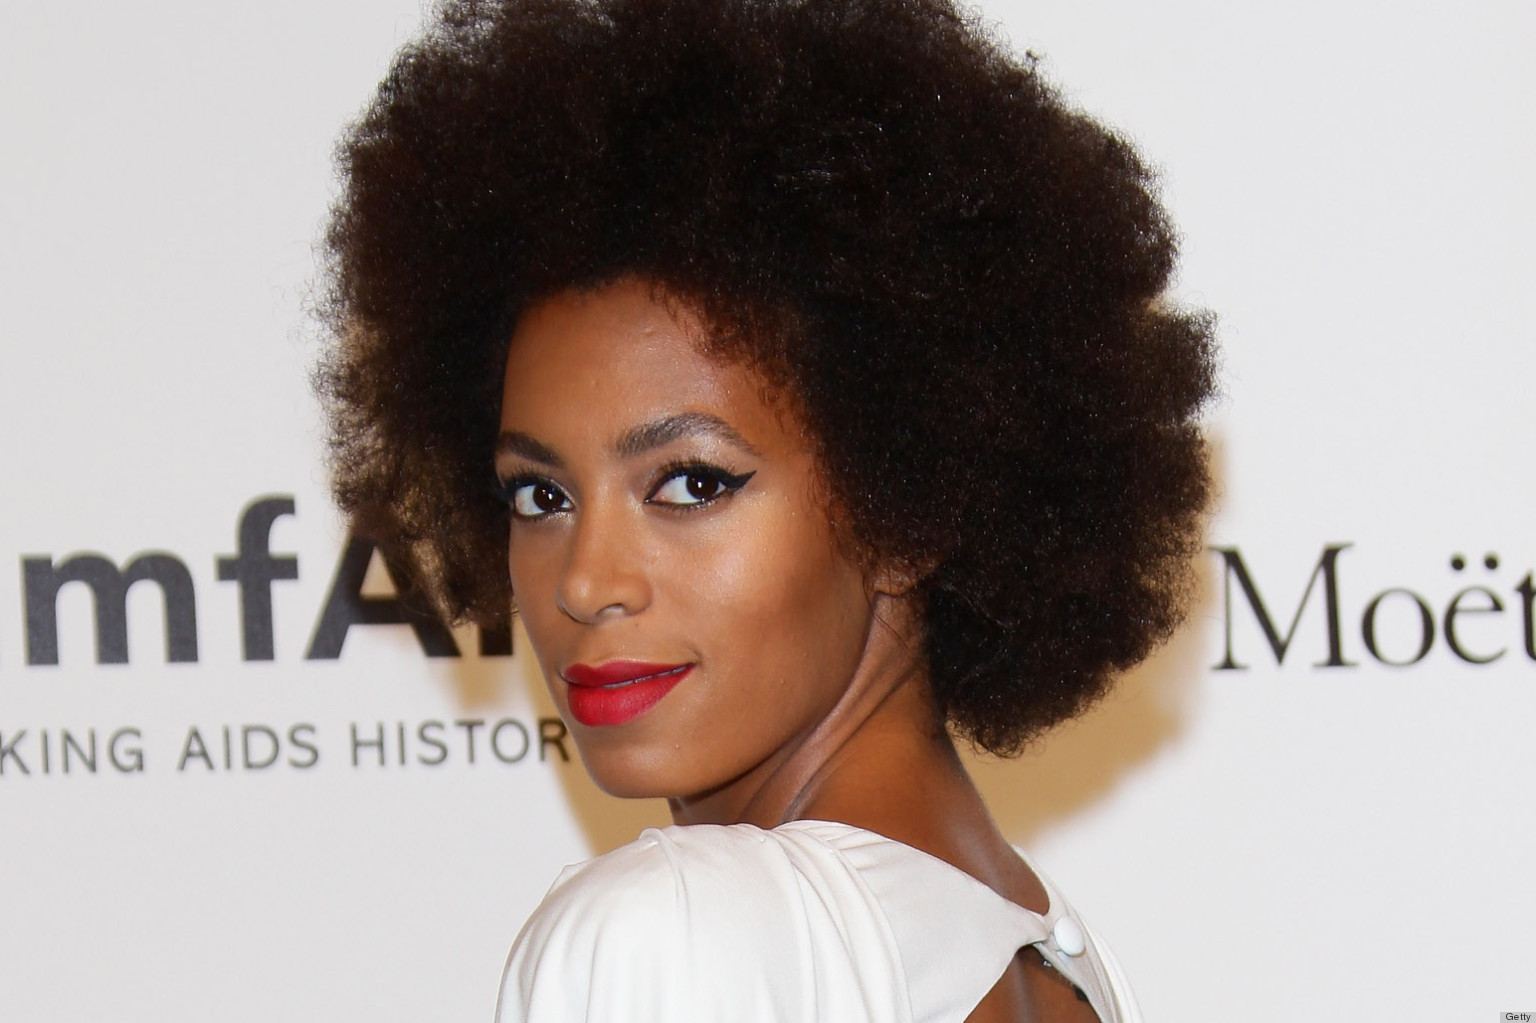 http://i.huffpost.com/gen/809400/thumbs/o-SOLANGE-KNOWLES-facebook.jpg